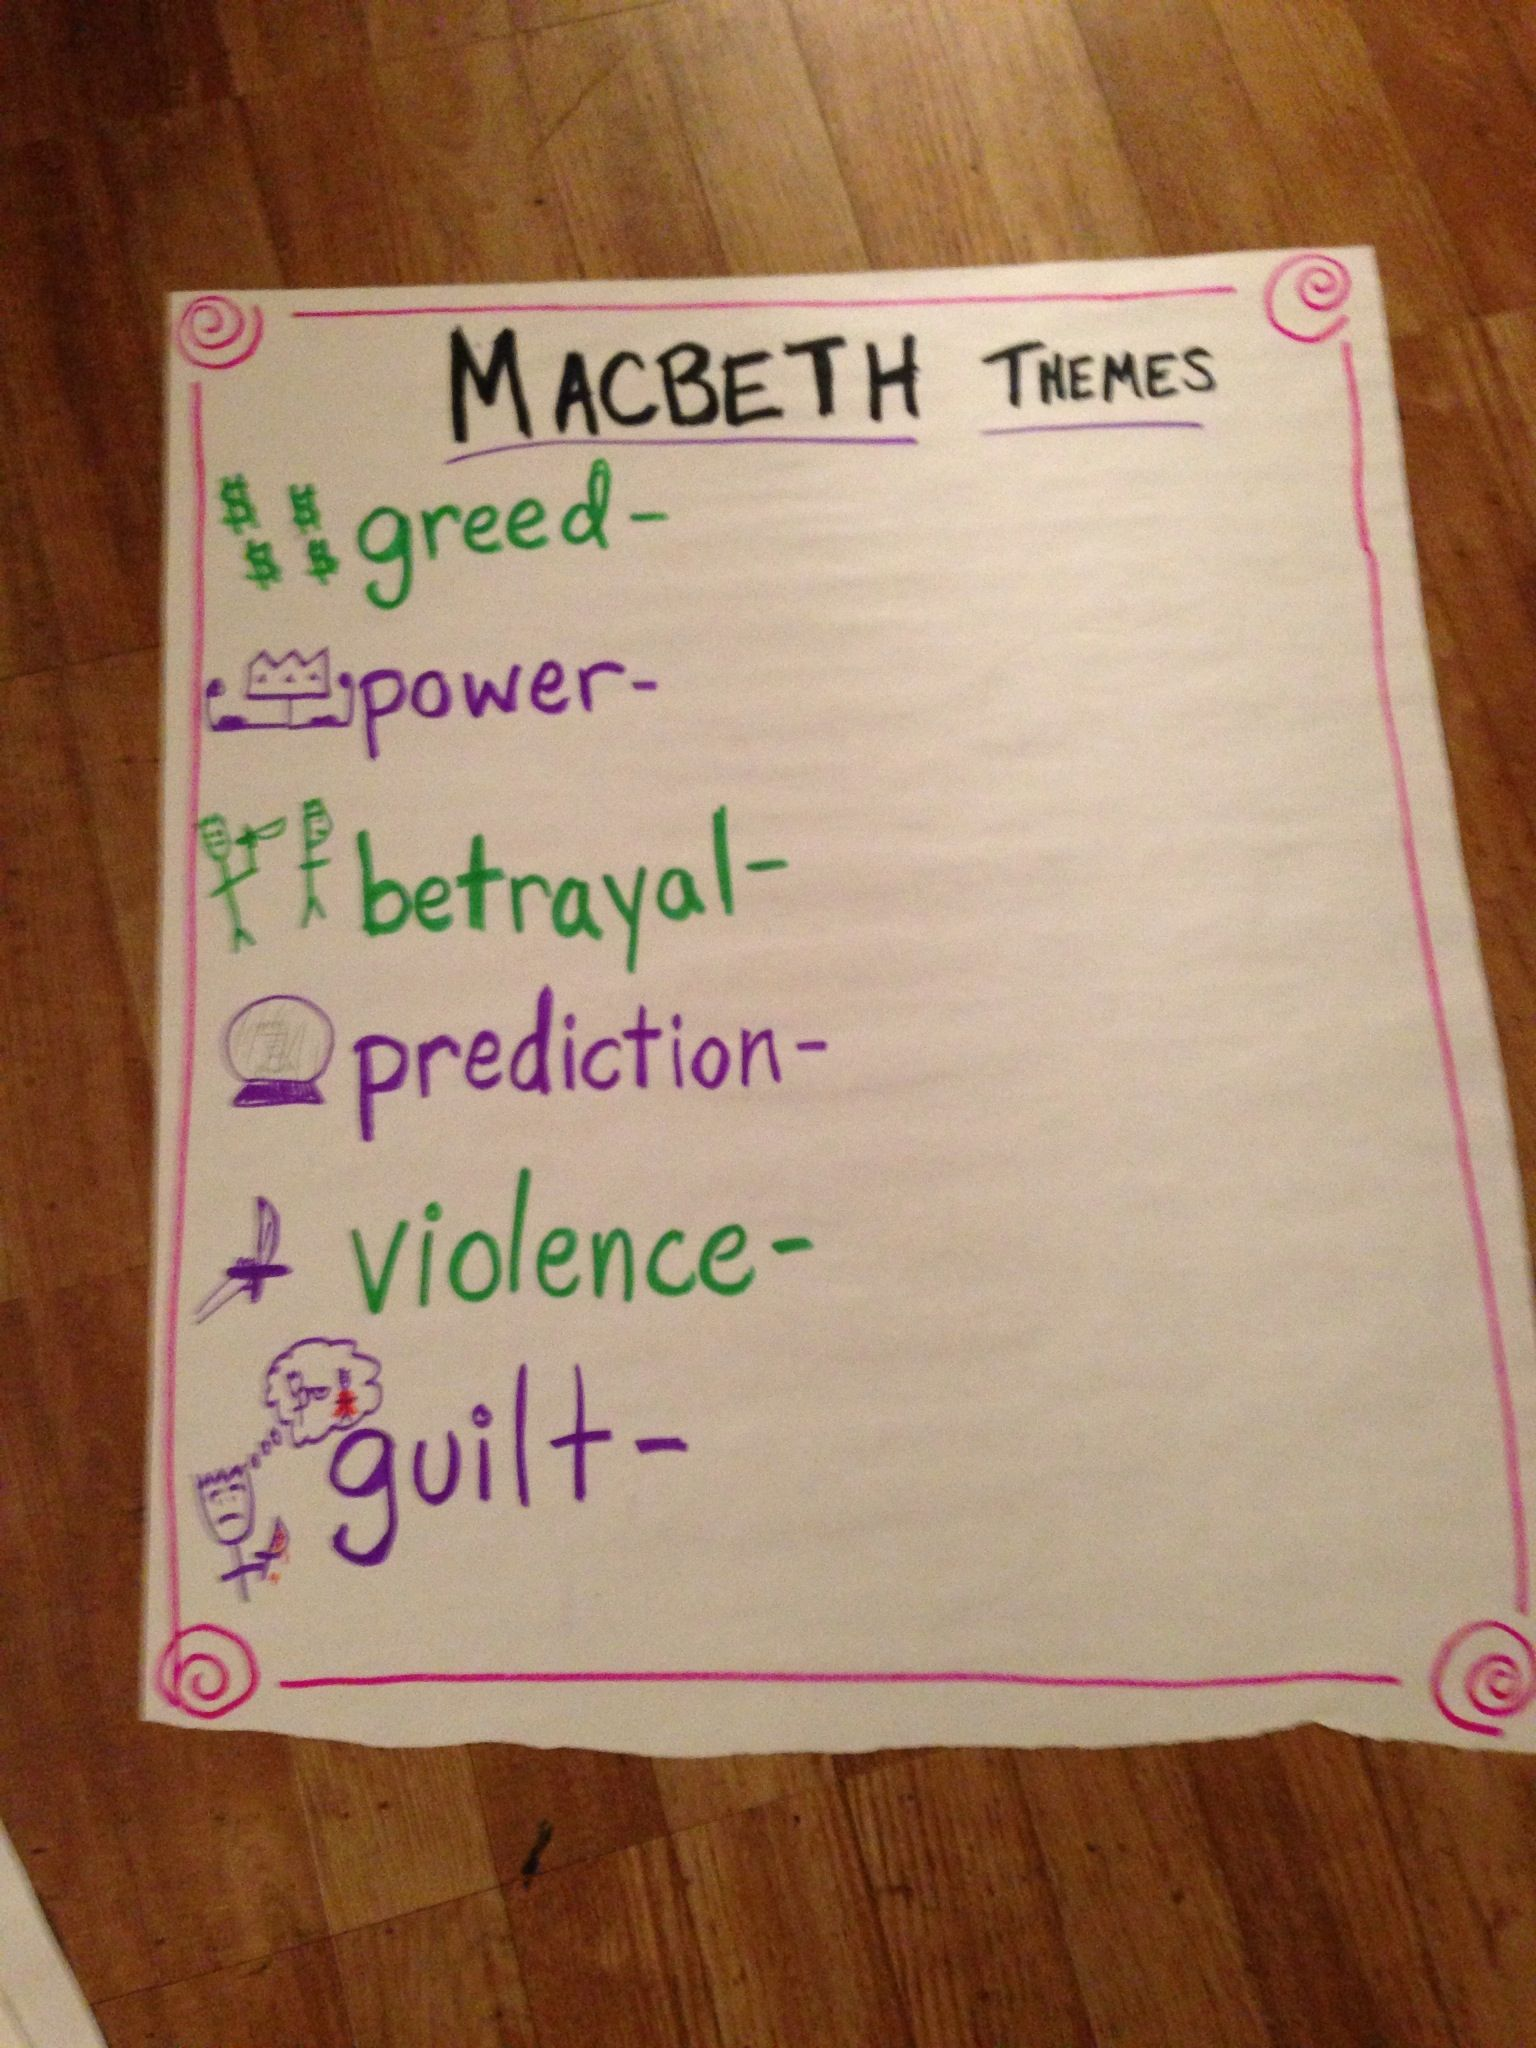 macbeth and lady macbeth s guilt essay Macbeth by shakespeare - lady macbeth and themes essay the literary work of macbeth wouldn't be a well-written story if macbeth did not exist, but it also wouldn't be universal if the secondary character of lady macbeth, macbeth's wife, did not exist.